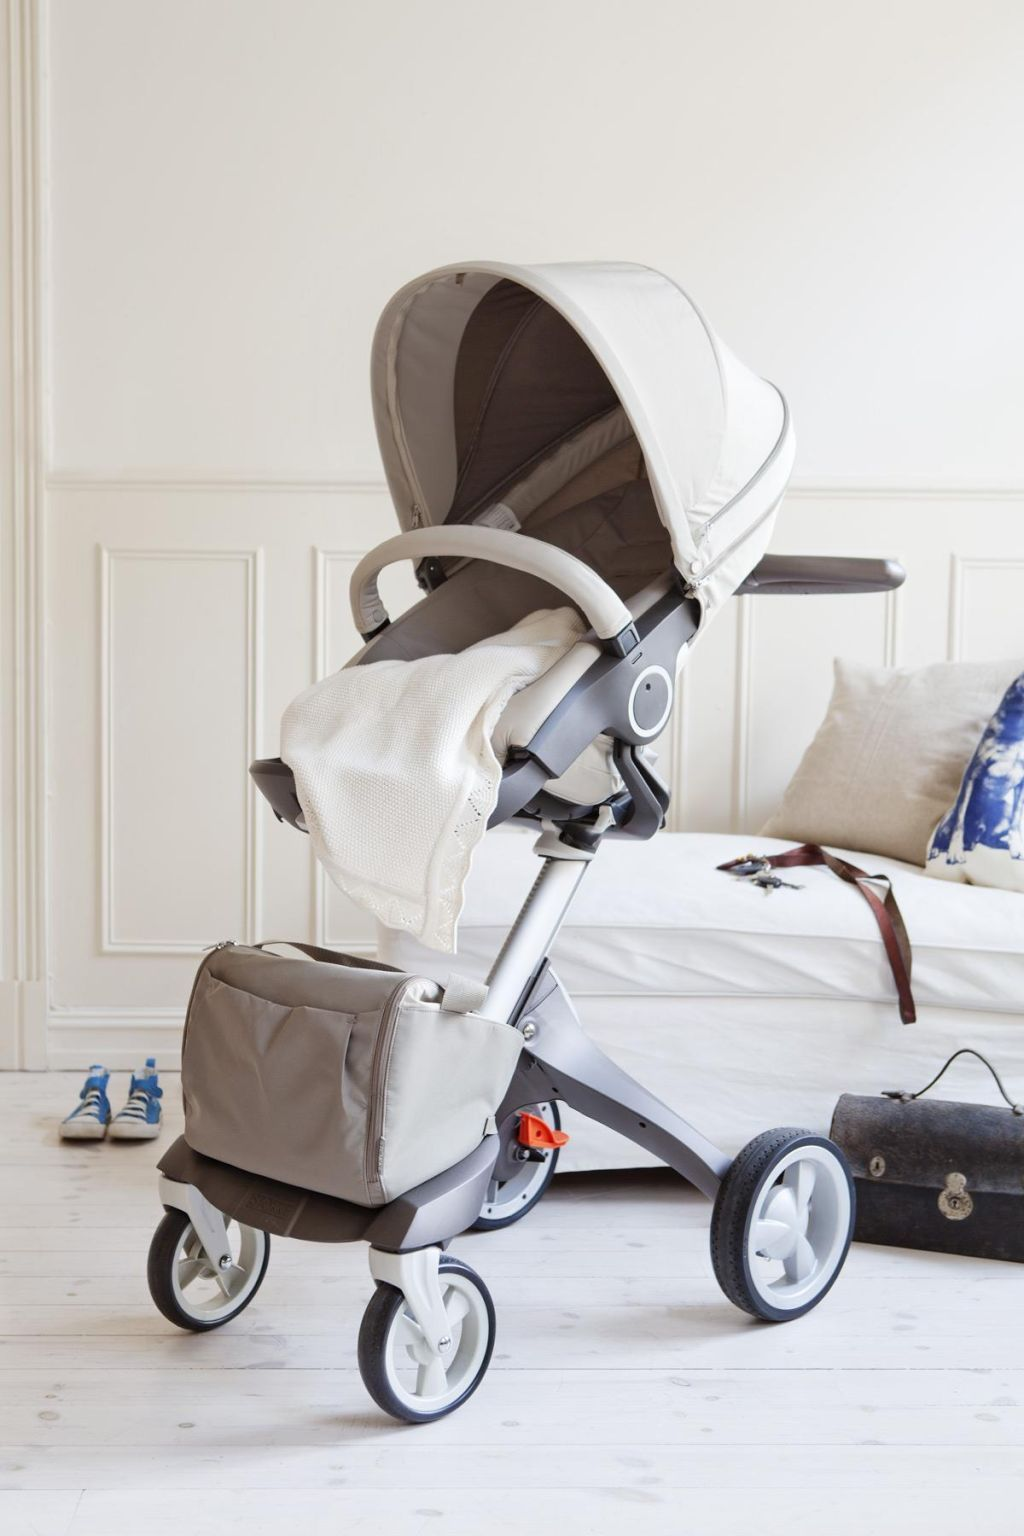 Stokke Xplory beige, such a cool stroller! Baby